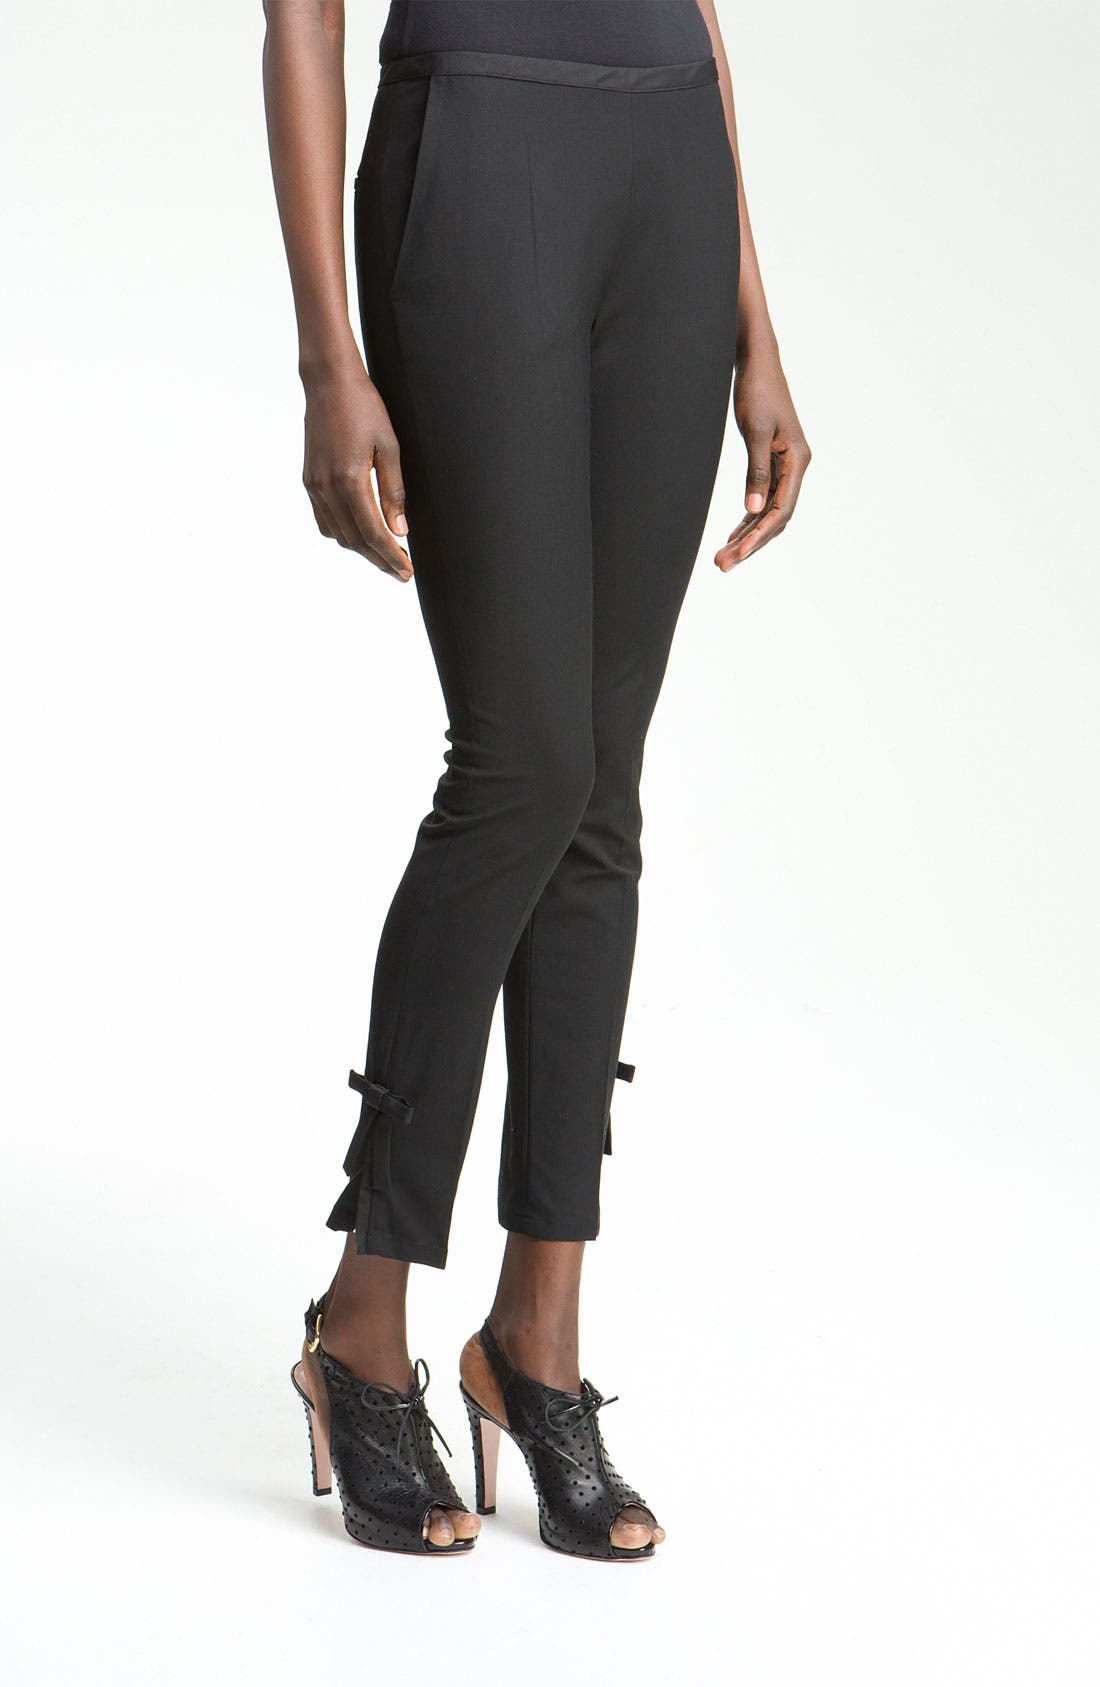 Alternate Image 1 Selected - RED Valentino Slim Ankle Length Pants